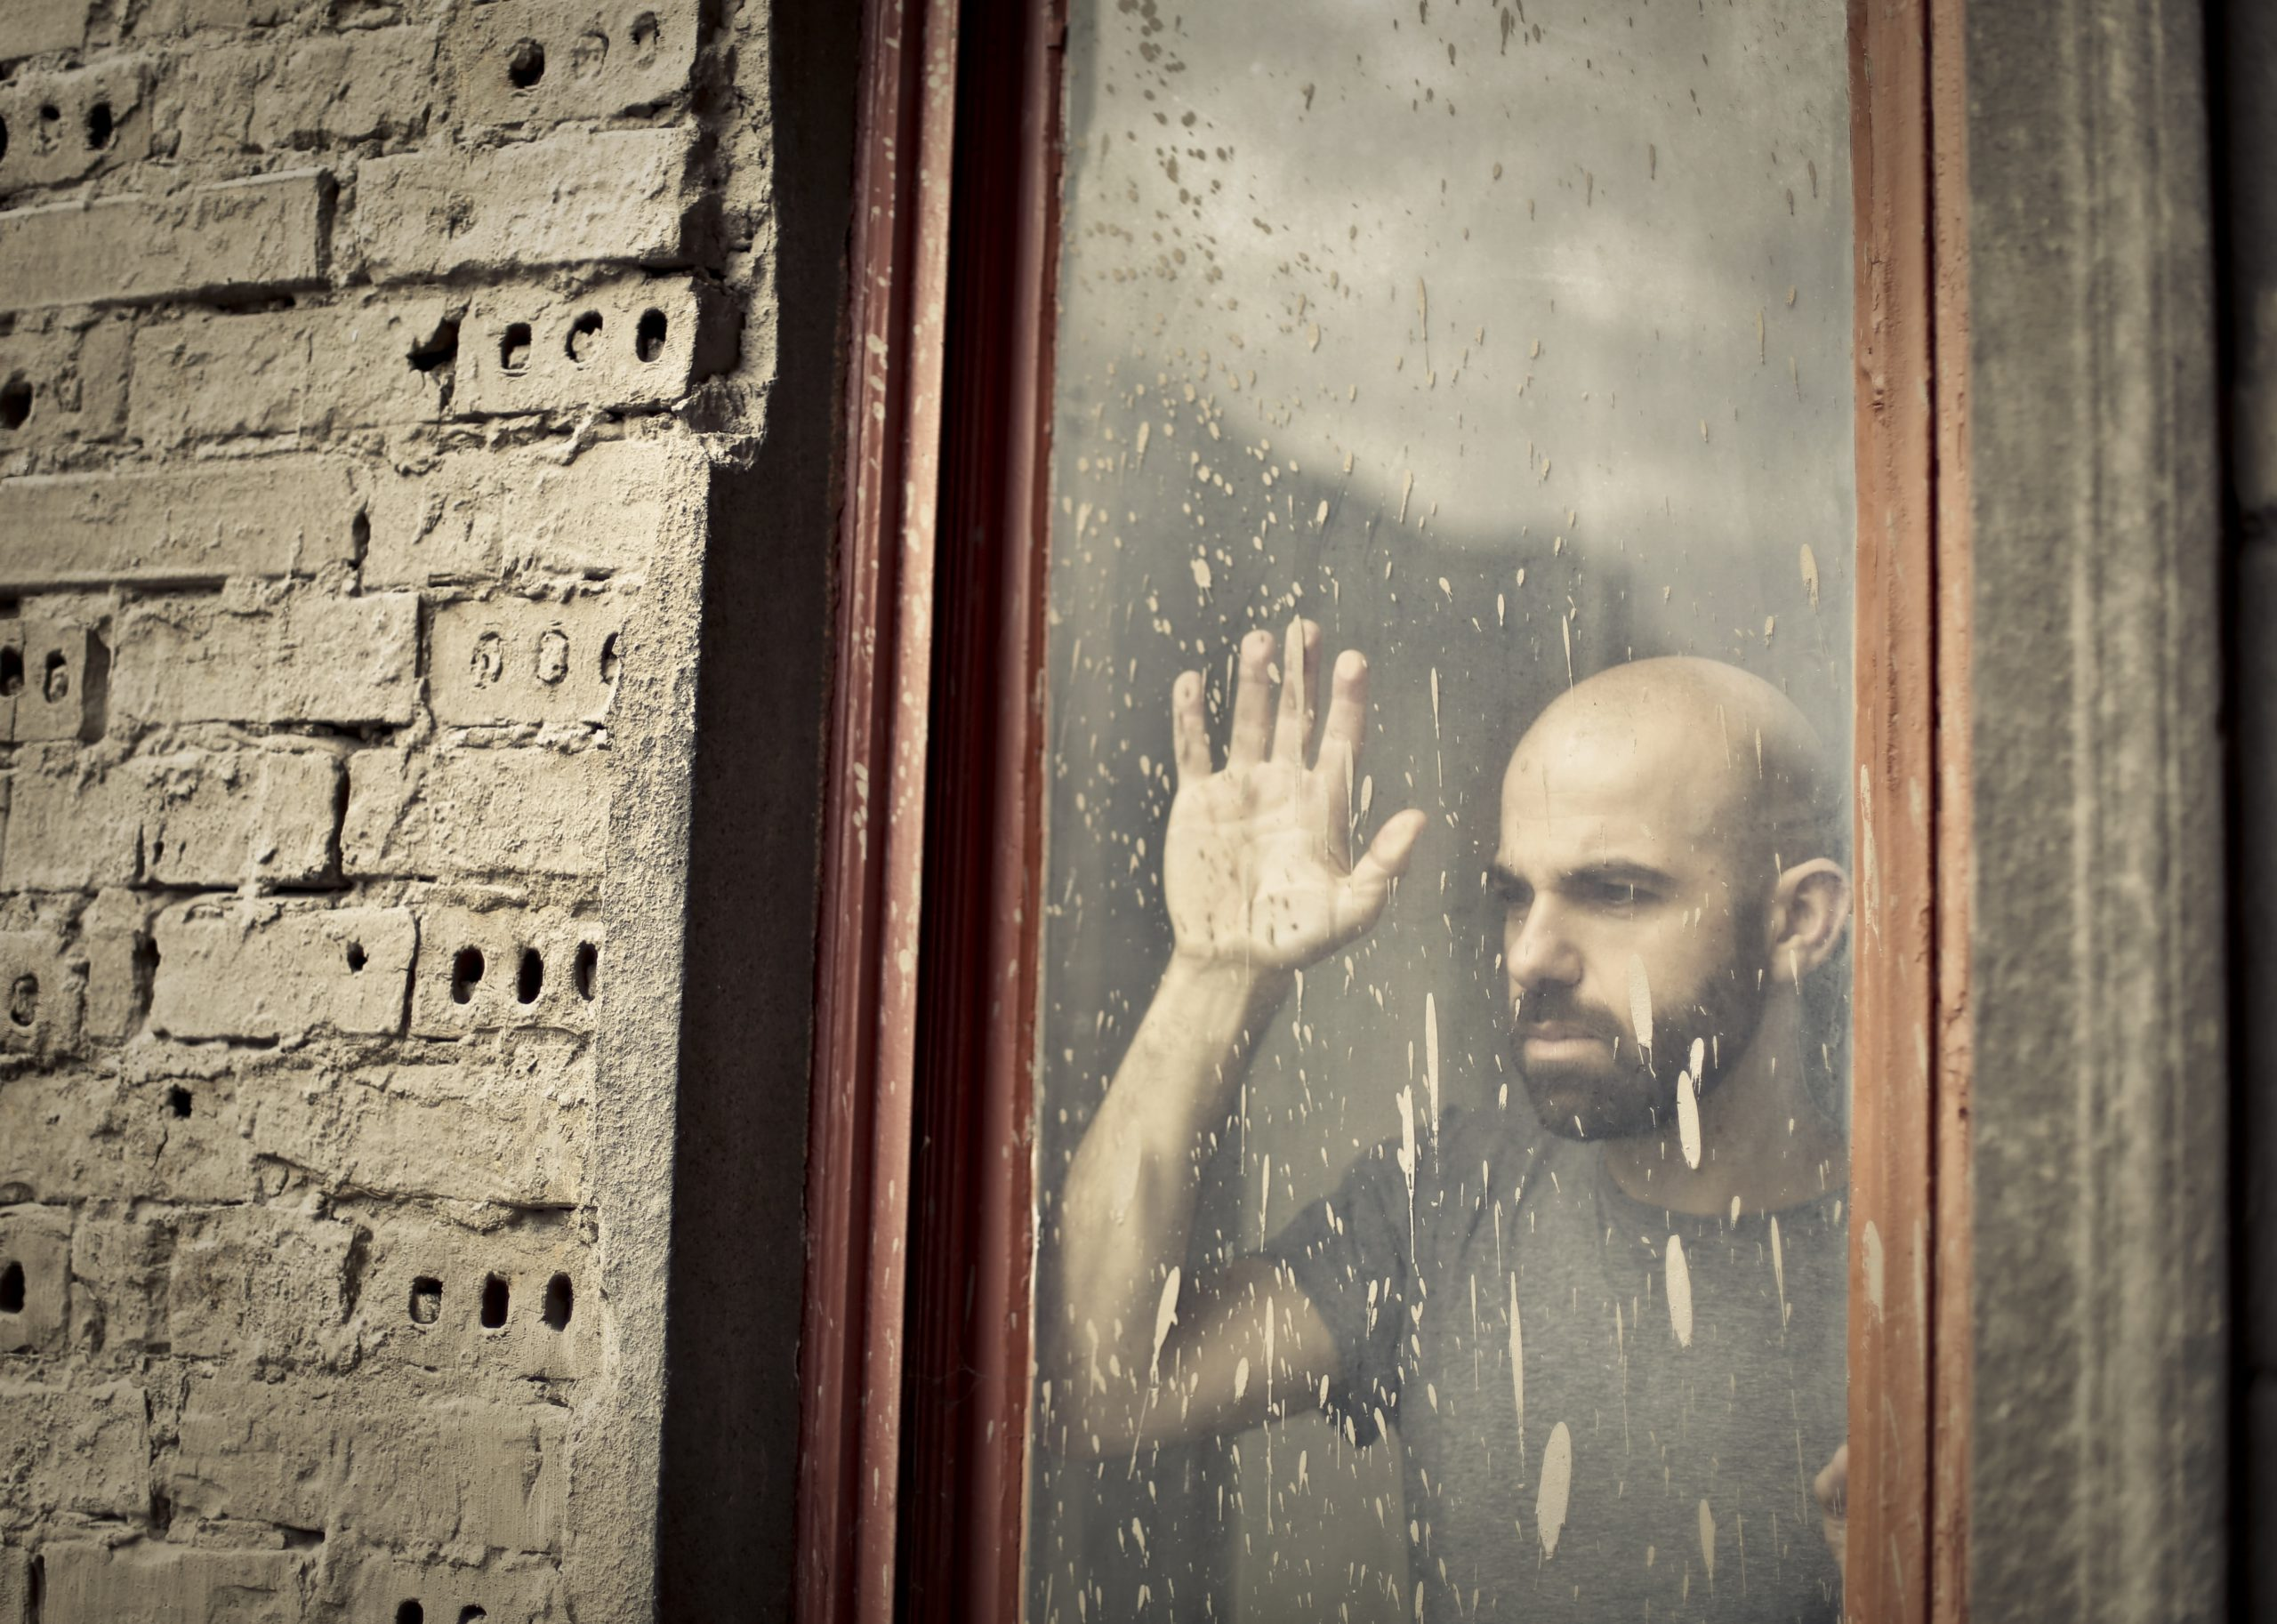 bearded, light-skinned person with hand against window, looking quietly desperately out onto rain